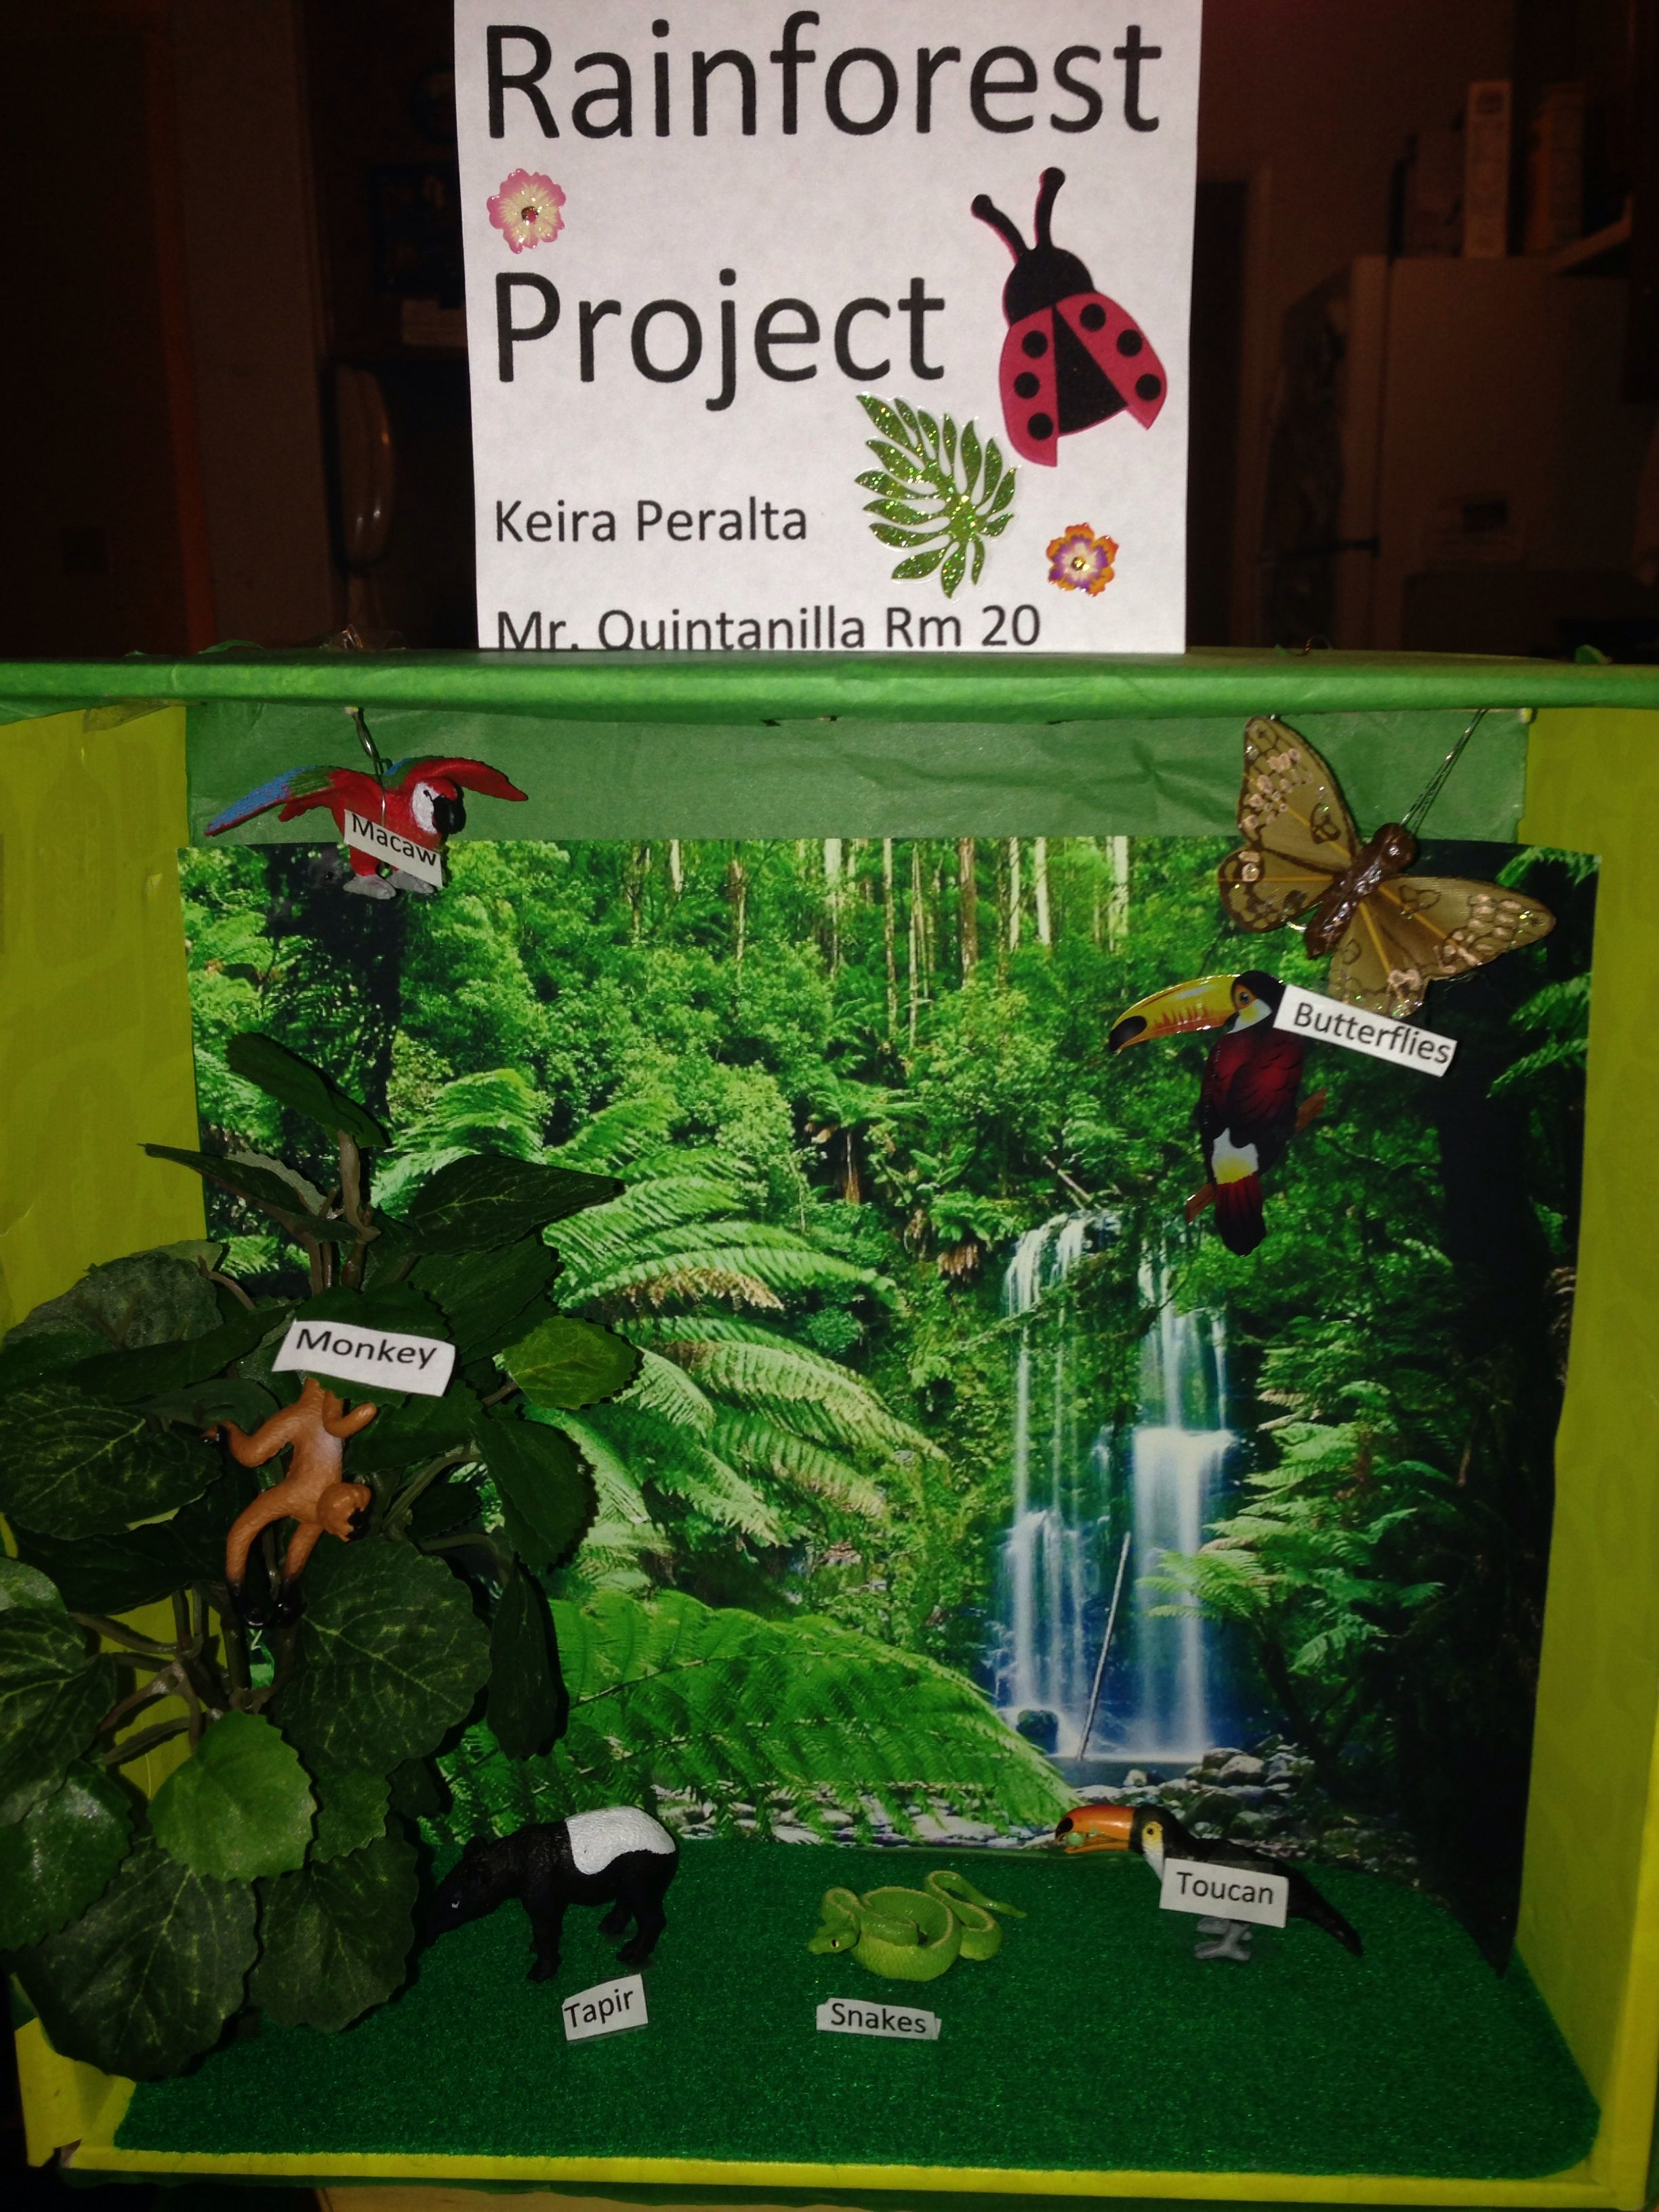 Rainforest Diorama Schoolproject Arts Crafts Projects